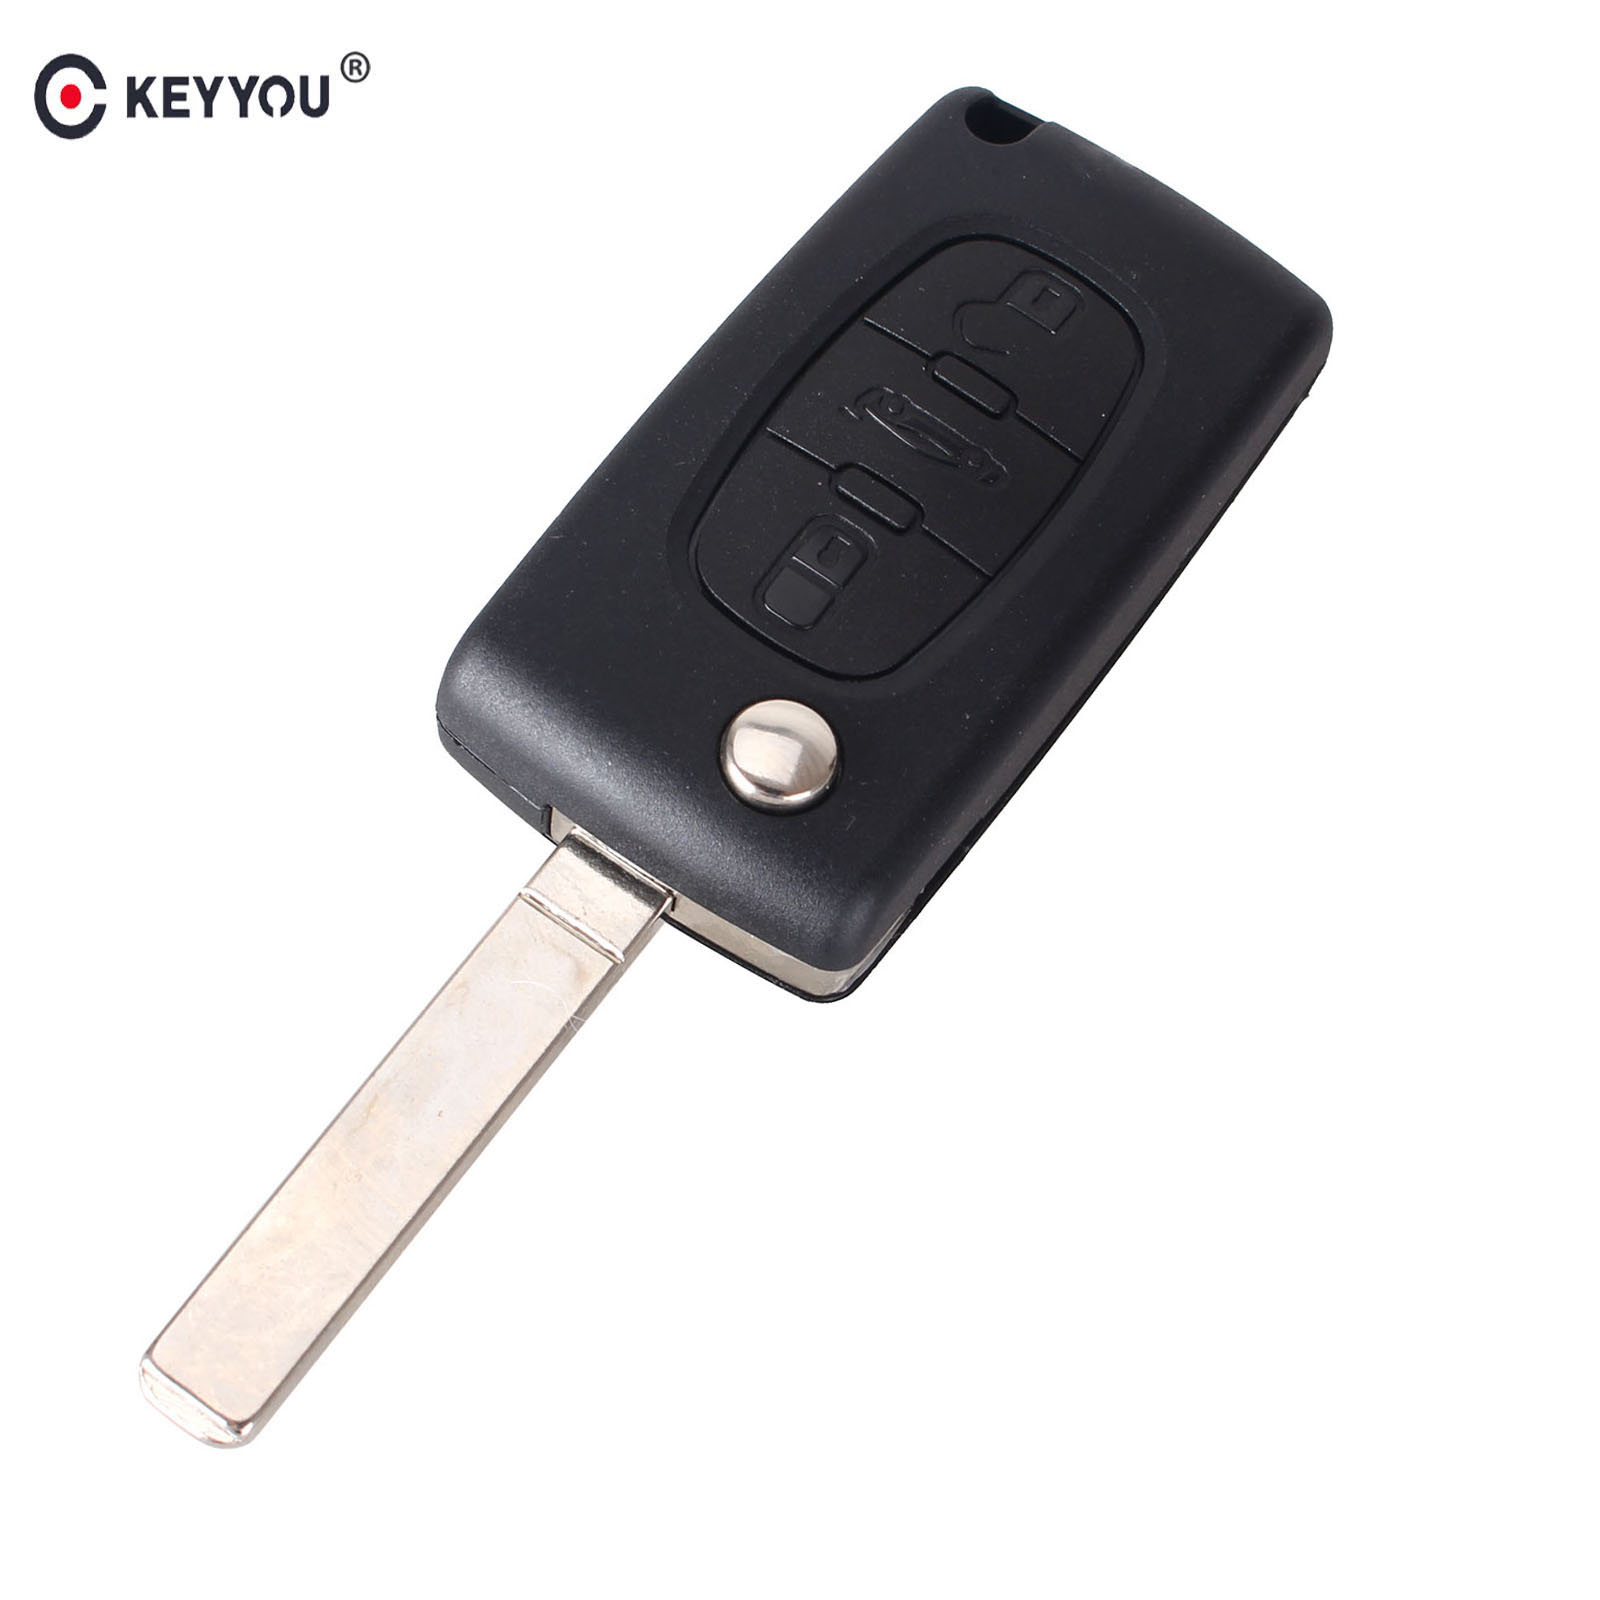 KEYYOU For Peugeot 207 307 407 308 607 3 Buttons Flip Remote Key Shell Case Fob CE0523 2 button flip remote key fob case shell blade keychain for peugeot 207 307 308